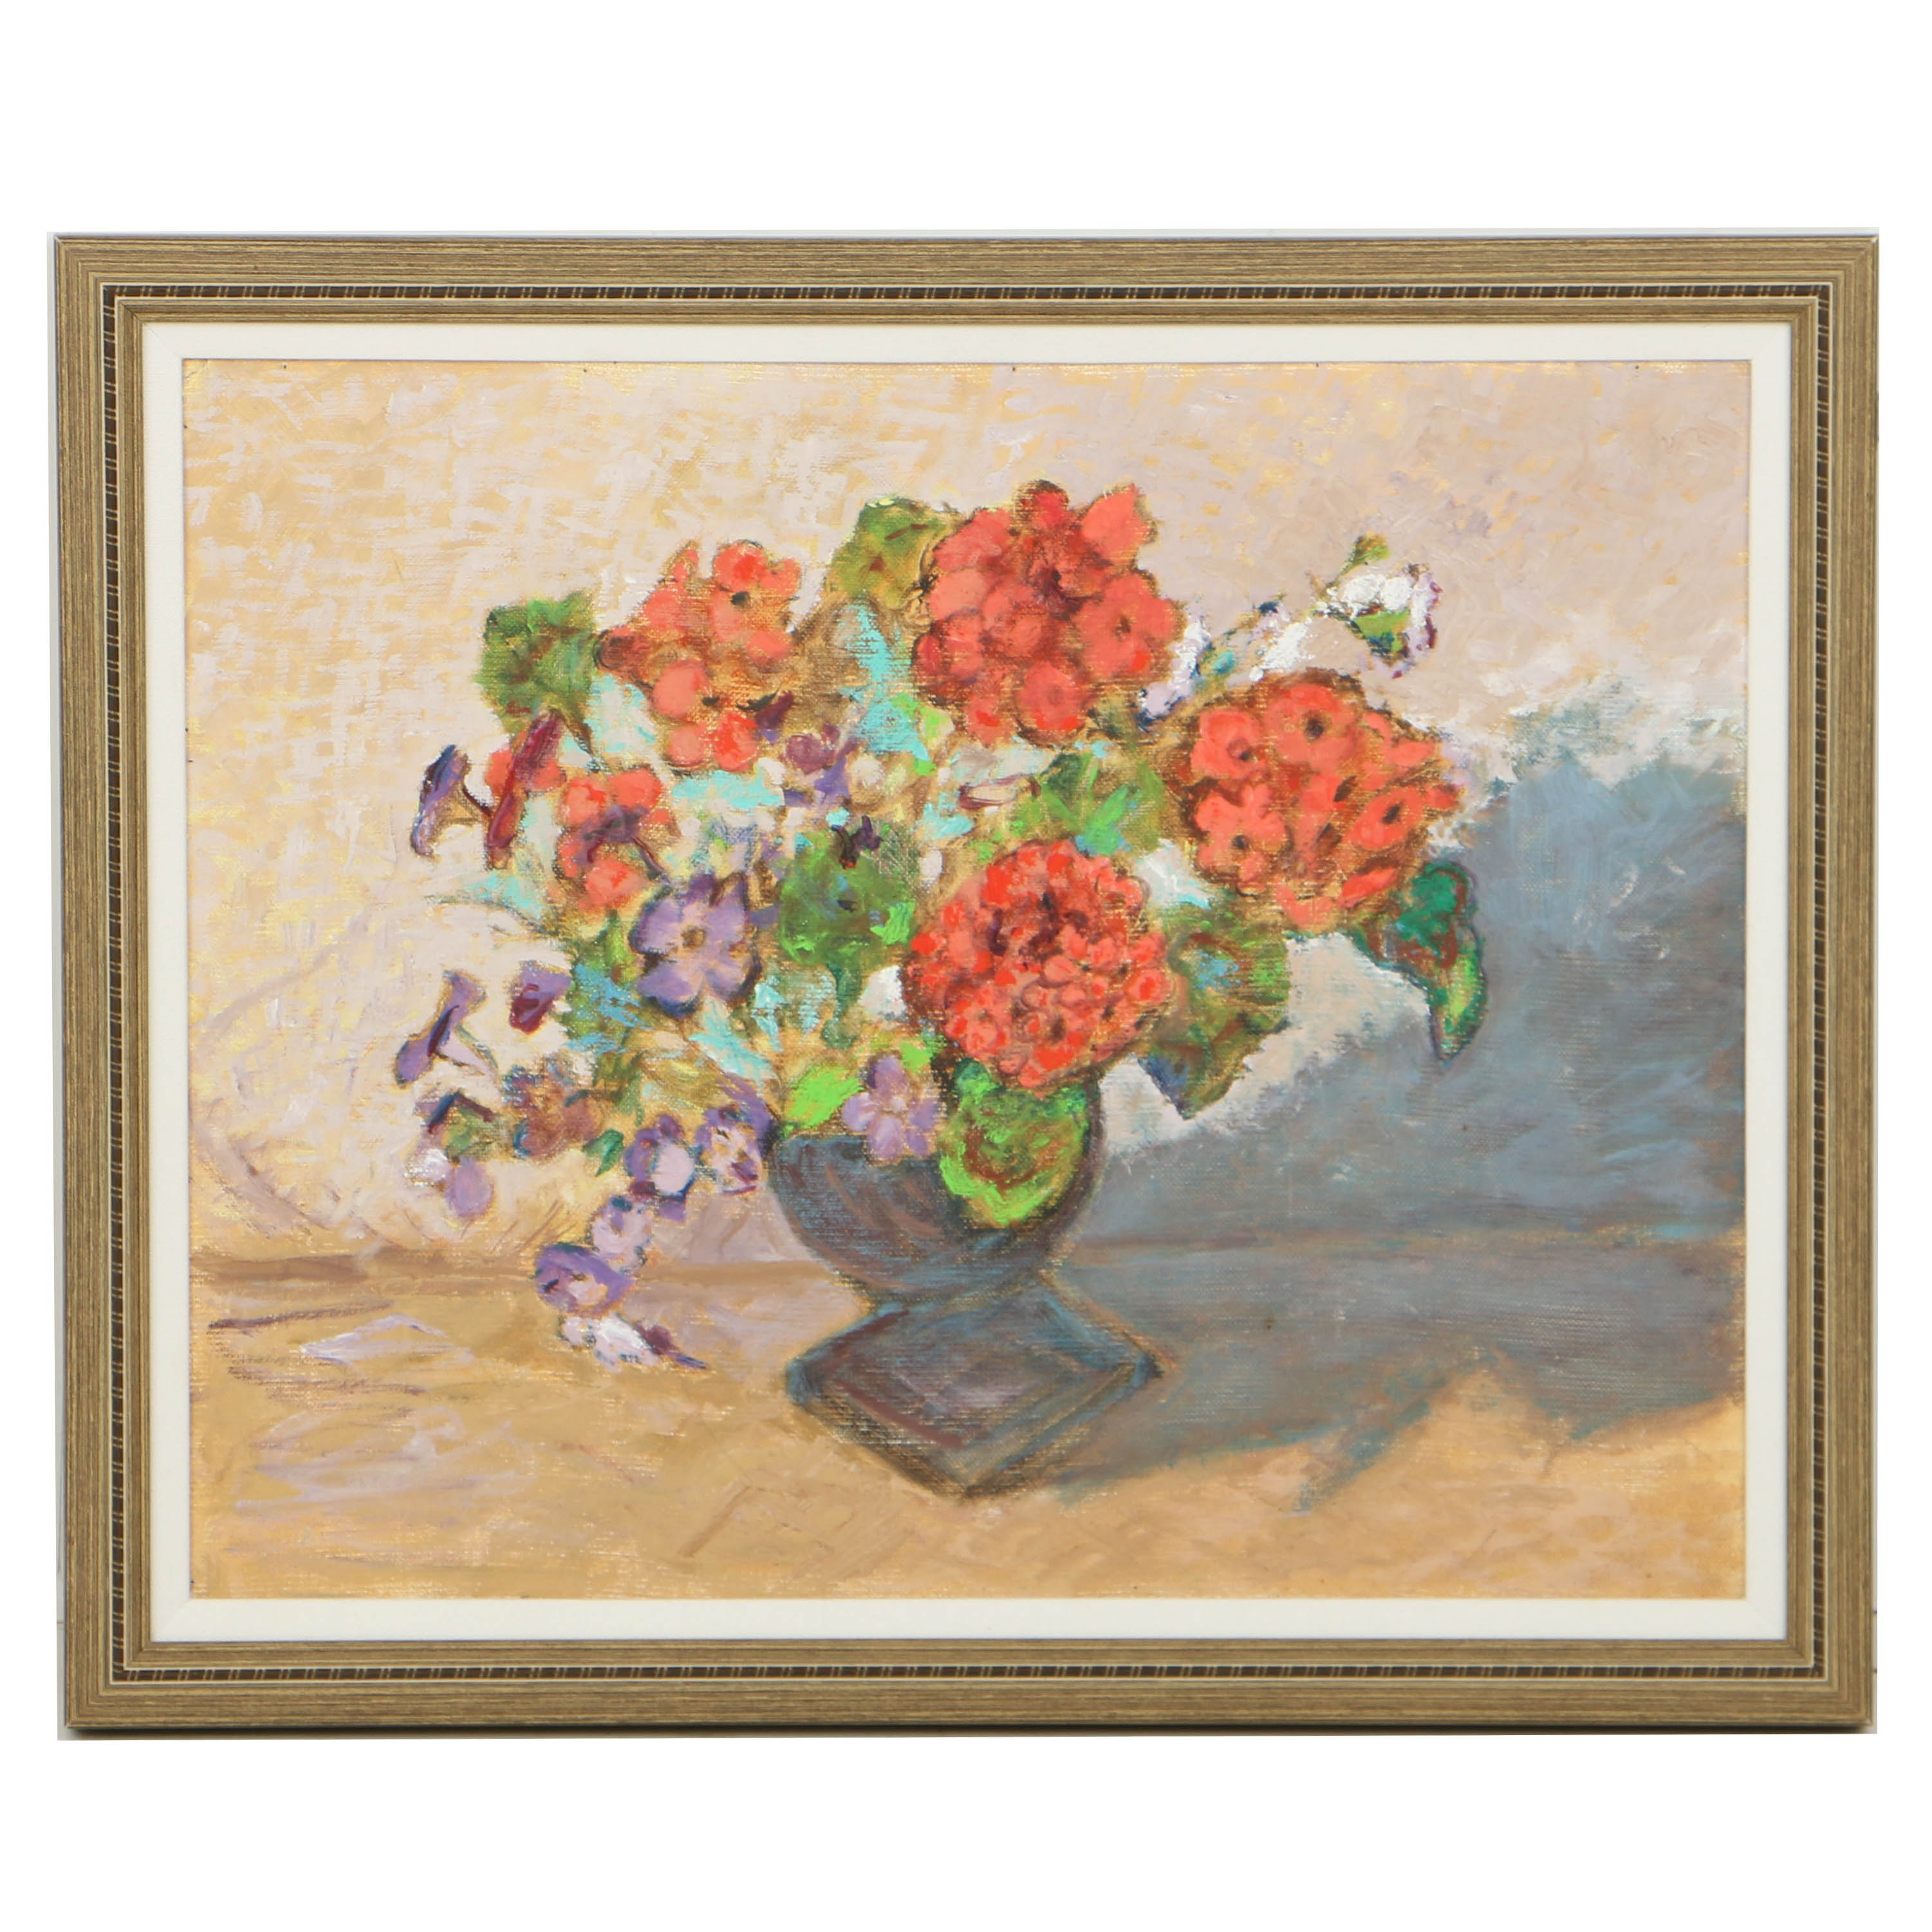 Oil Painting on Canvas Board Floral Still Life